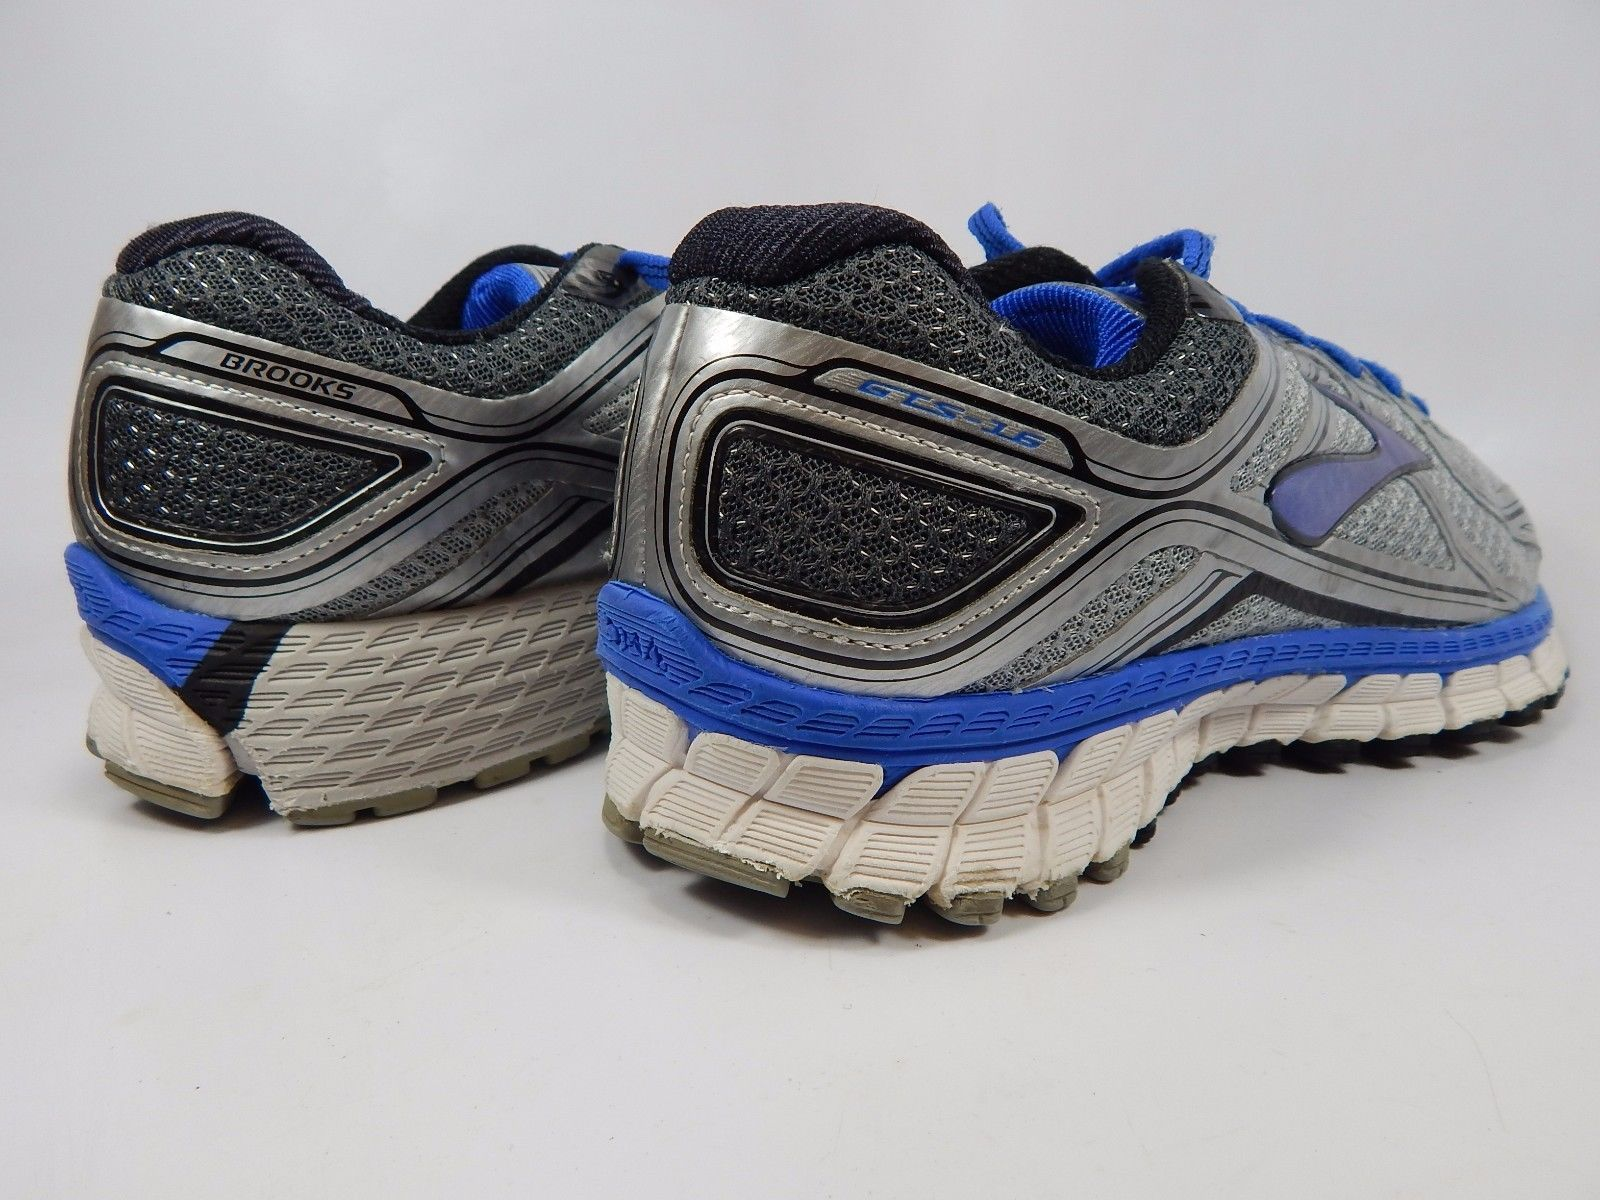 Brooks Adrenaline GTS 16 Men's Running Shoes Sz 7.5 2E WIDE EU 40.5 1102122E181